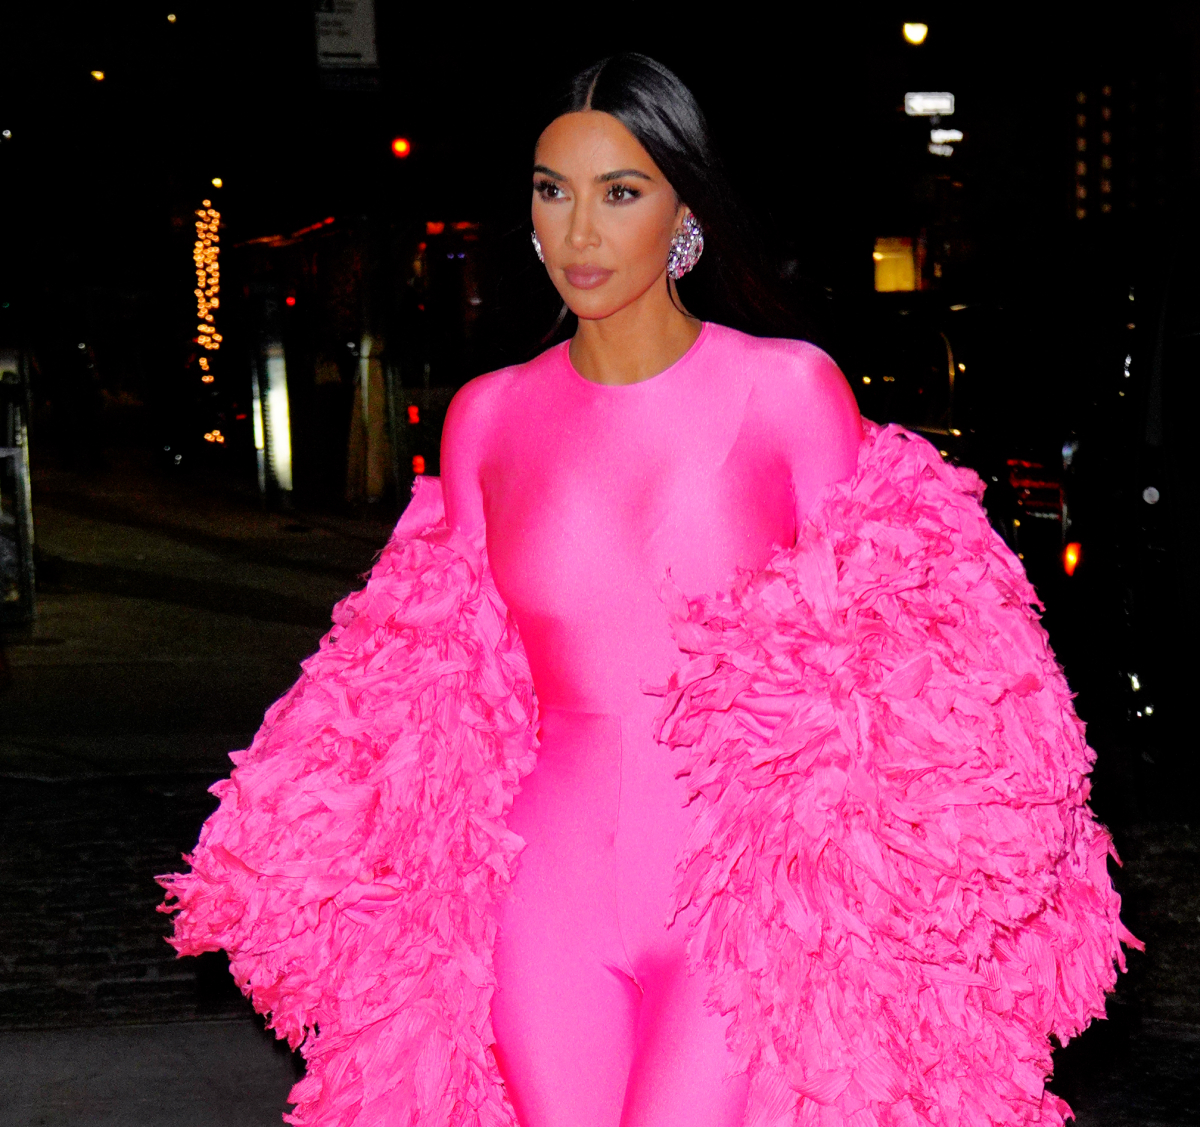 Kim Kardashian West arrives at the afterparty for Saturday Night Live. She is wearing a pink catsuit with large earrings and a pink feather wrap.